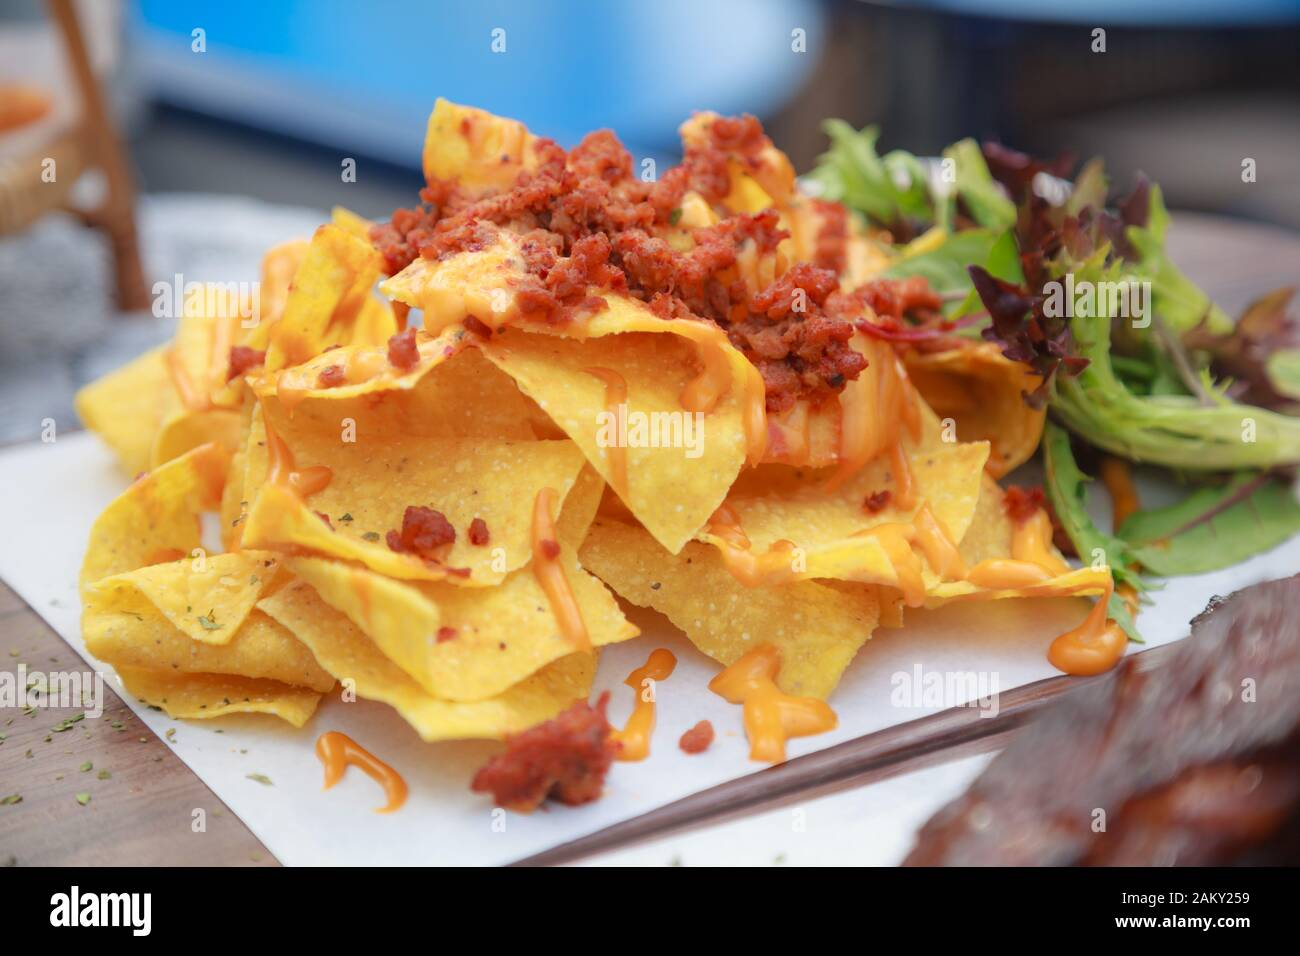 Mexican Crispy Crunchy Tortilla Chips Snack Food Made From Corn Tortillas Which Are Cut Into Triangles And Then Fried Or Baked Food Travel Tourism Stock Photo Alamy